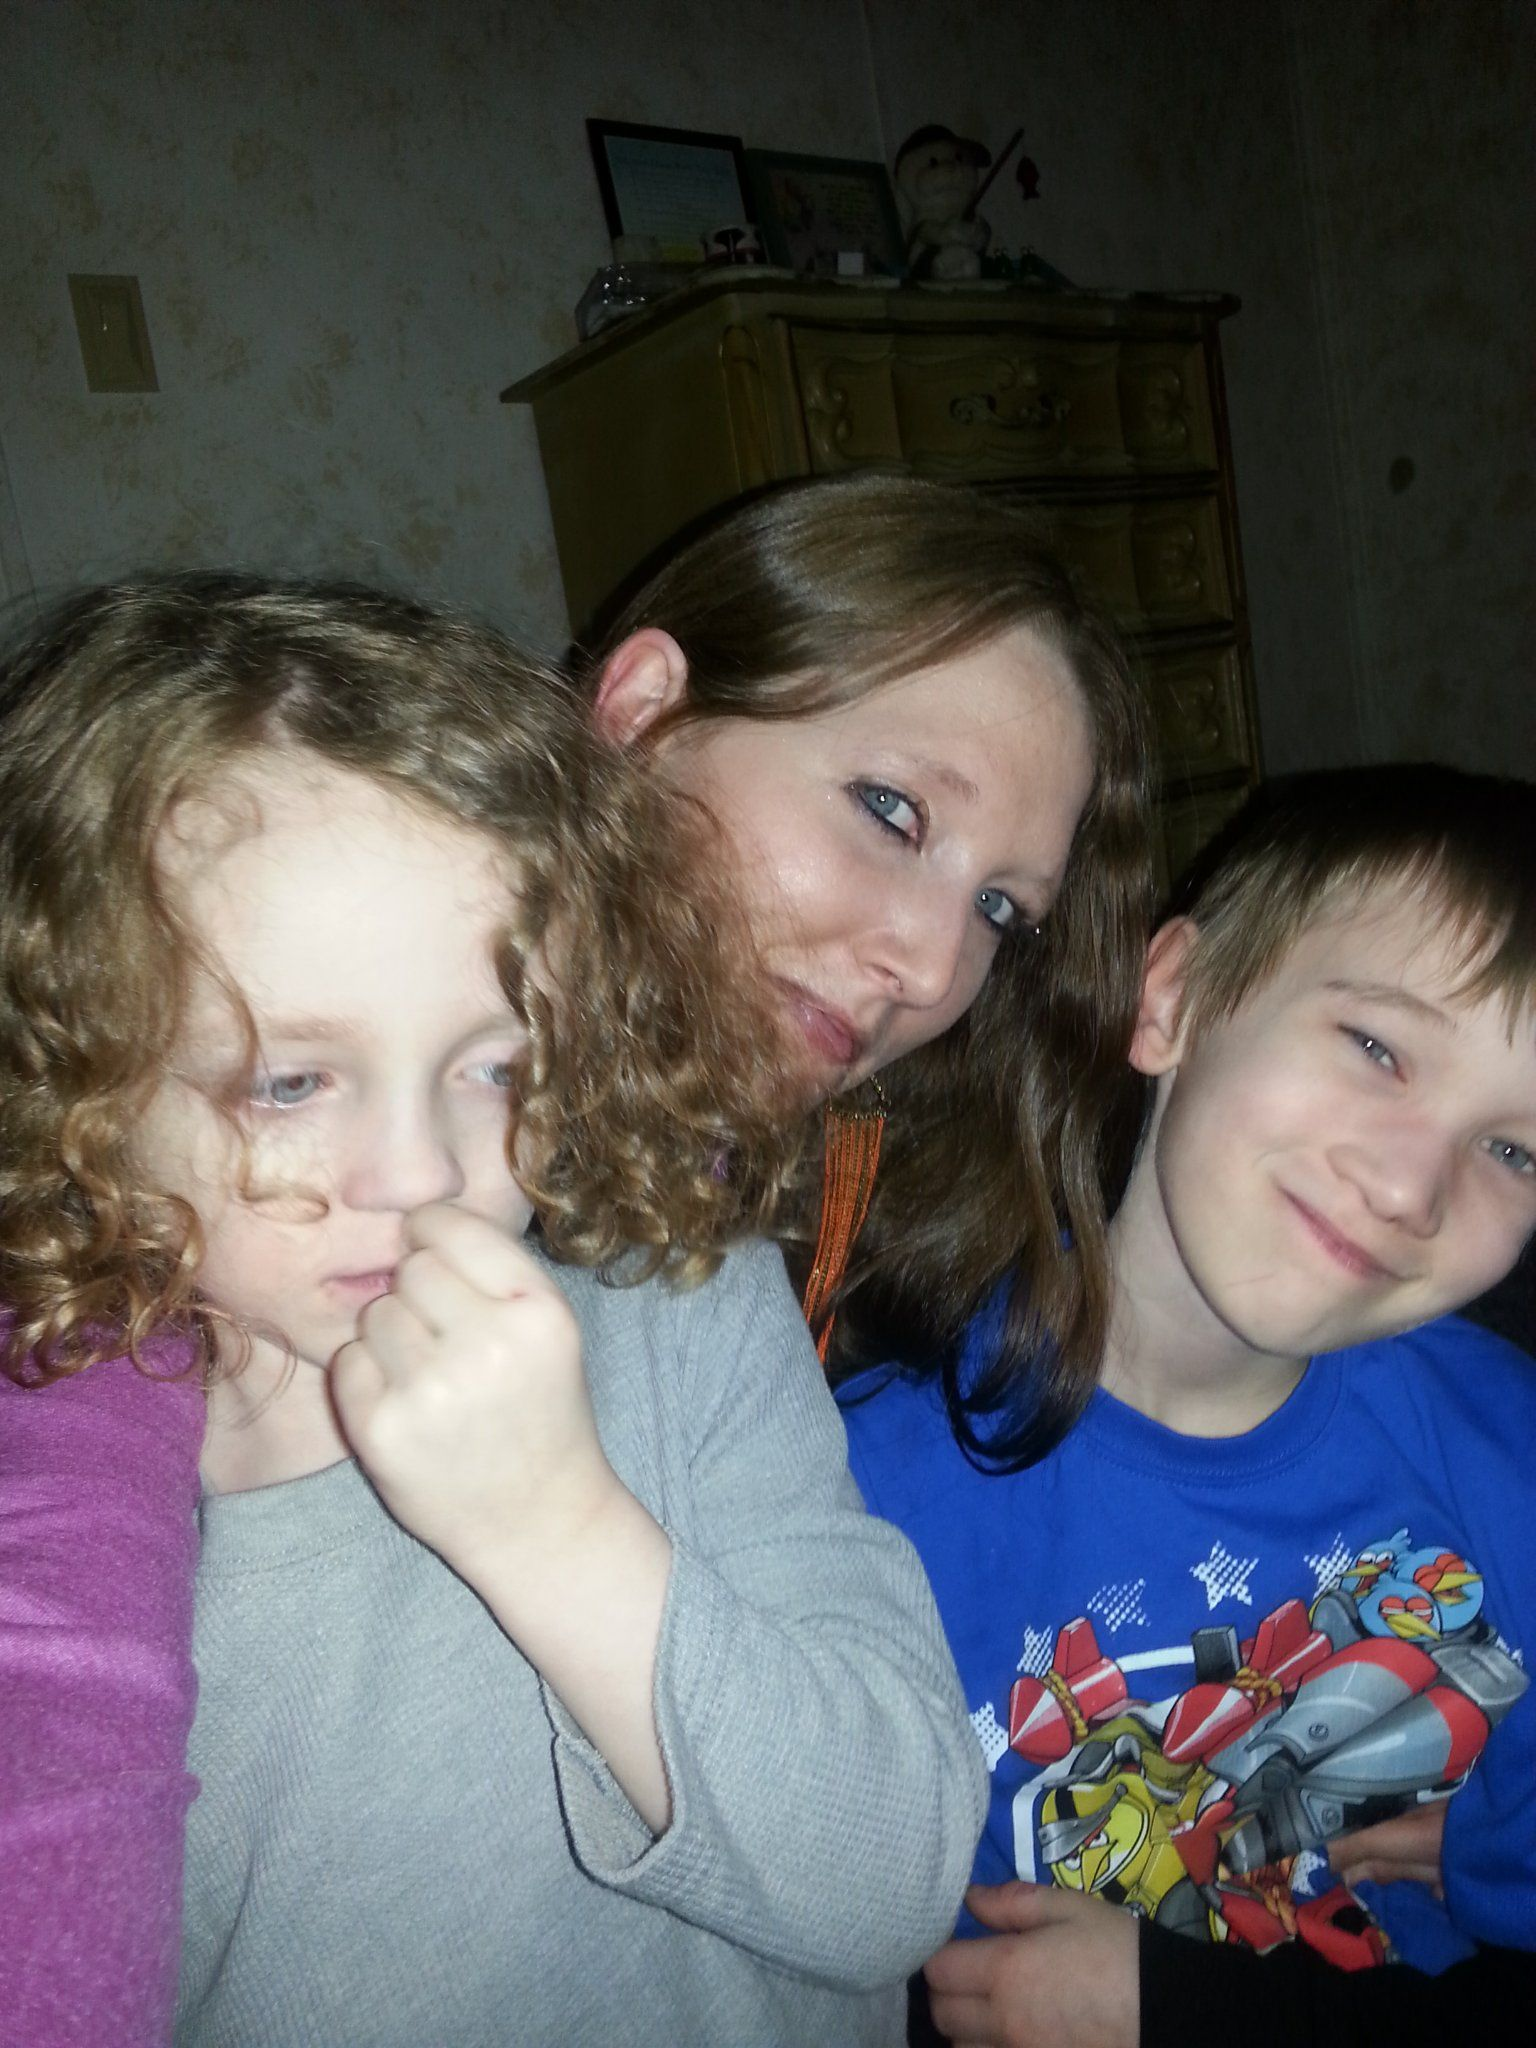 This is me w/my 2 boys on Christmas. Its my favorite pic bc I rarely get pics w/ my kids; they don't sit still long. I was happy they let me take a few pics even tho my youngest seems more interested in his nose haha. I love it bc it reminds me that it was our 1st Christmas in this home. We didn't get 2 have a big Christmas bc of financial issues, but it didn't matter bc we were all completely happy that day bc we were all together, happy, healthy, and having fun. It was a great day!